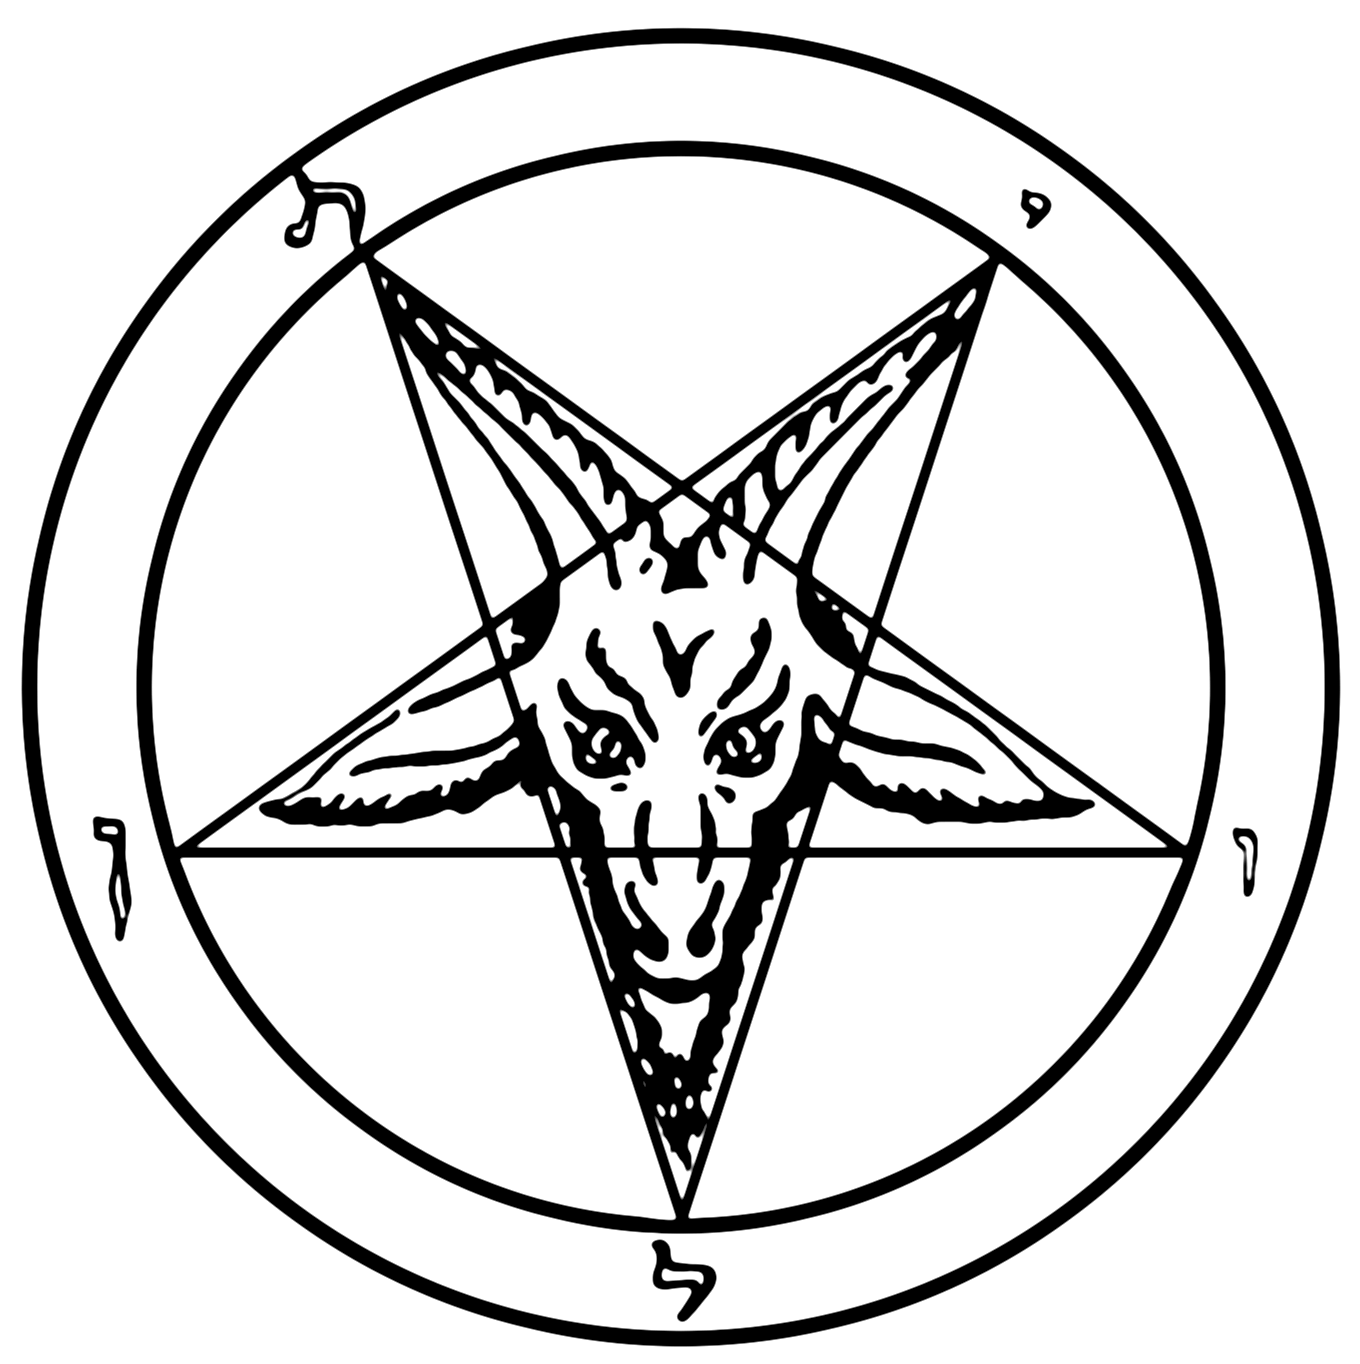 vector library Investigative journalists reveal findings. Baphomet drawing easy